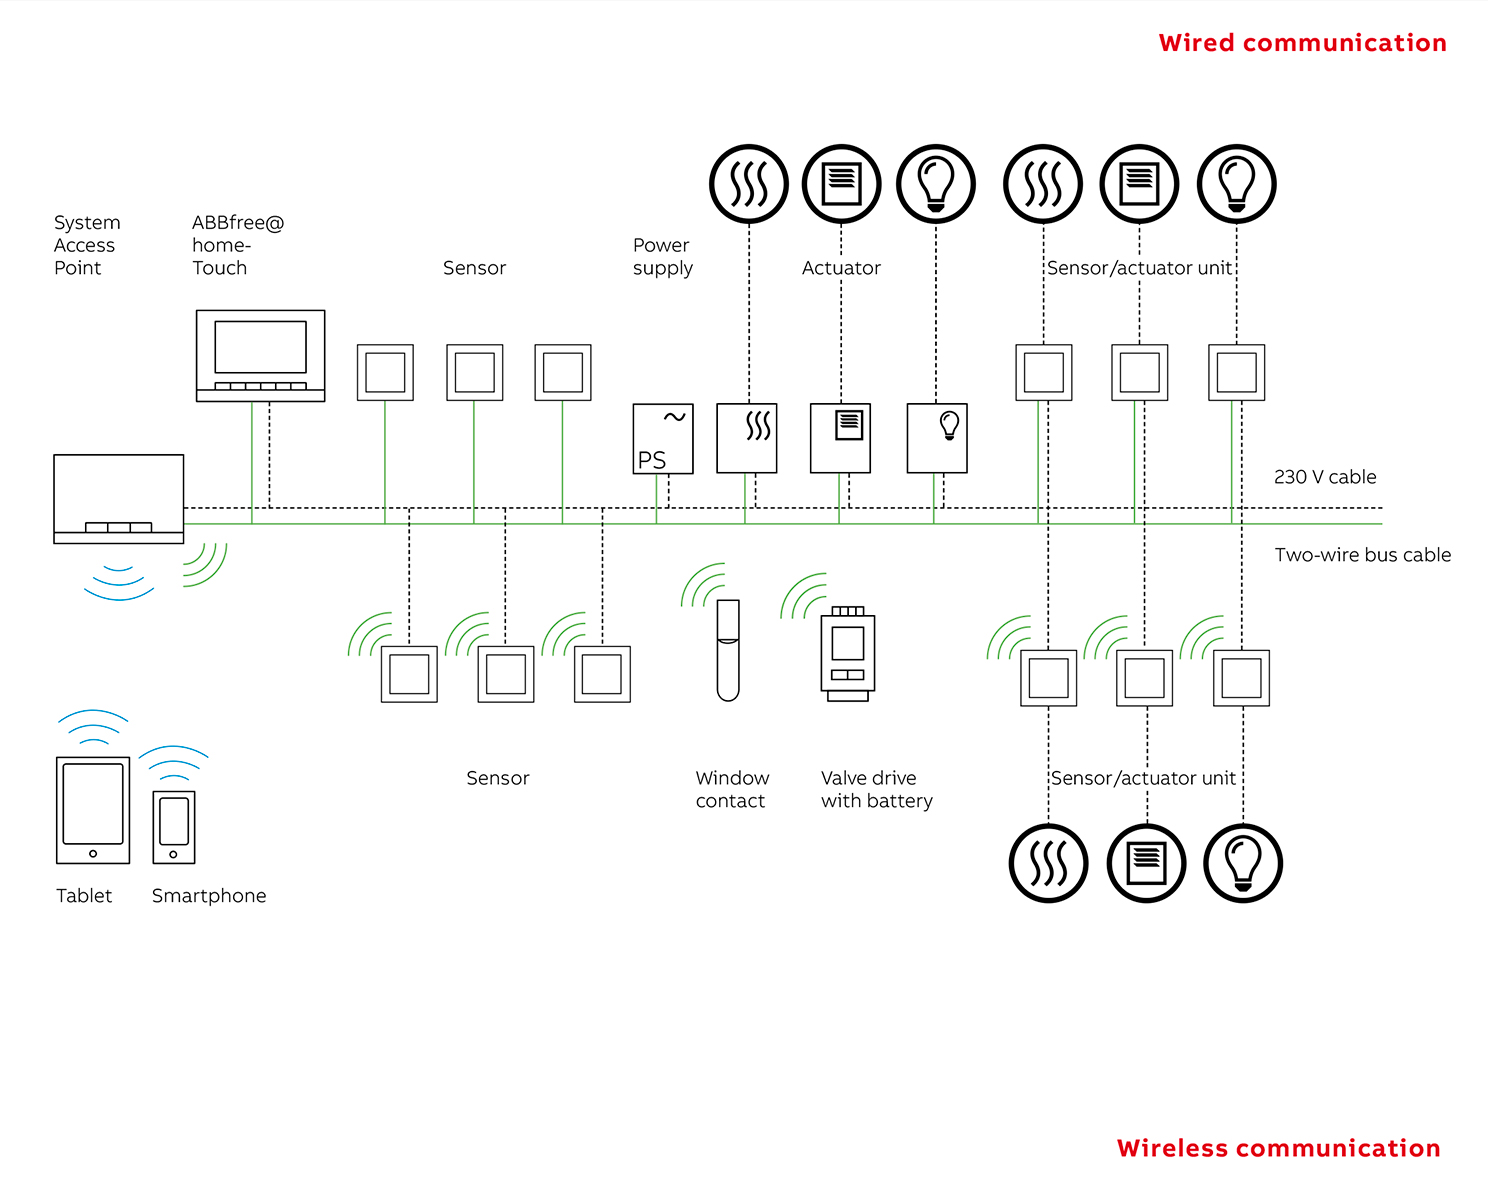 hight resolution of abb switch wiring diagram wiring diagram data schema abb switch wiring diagram